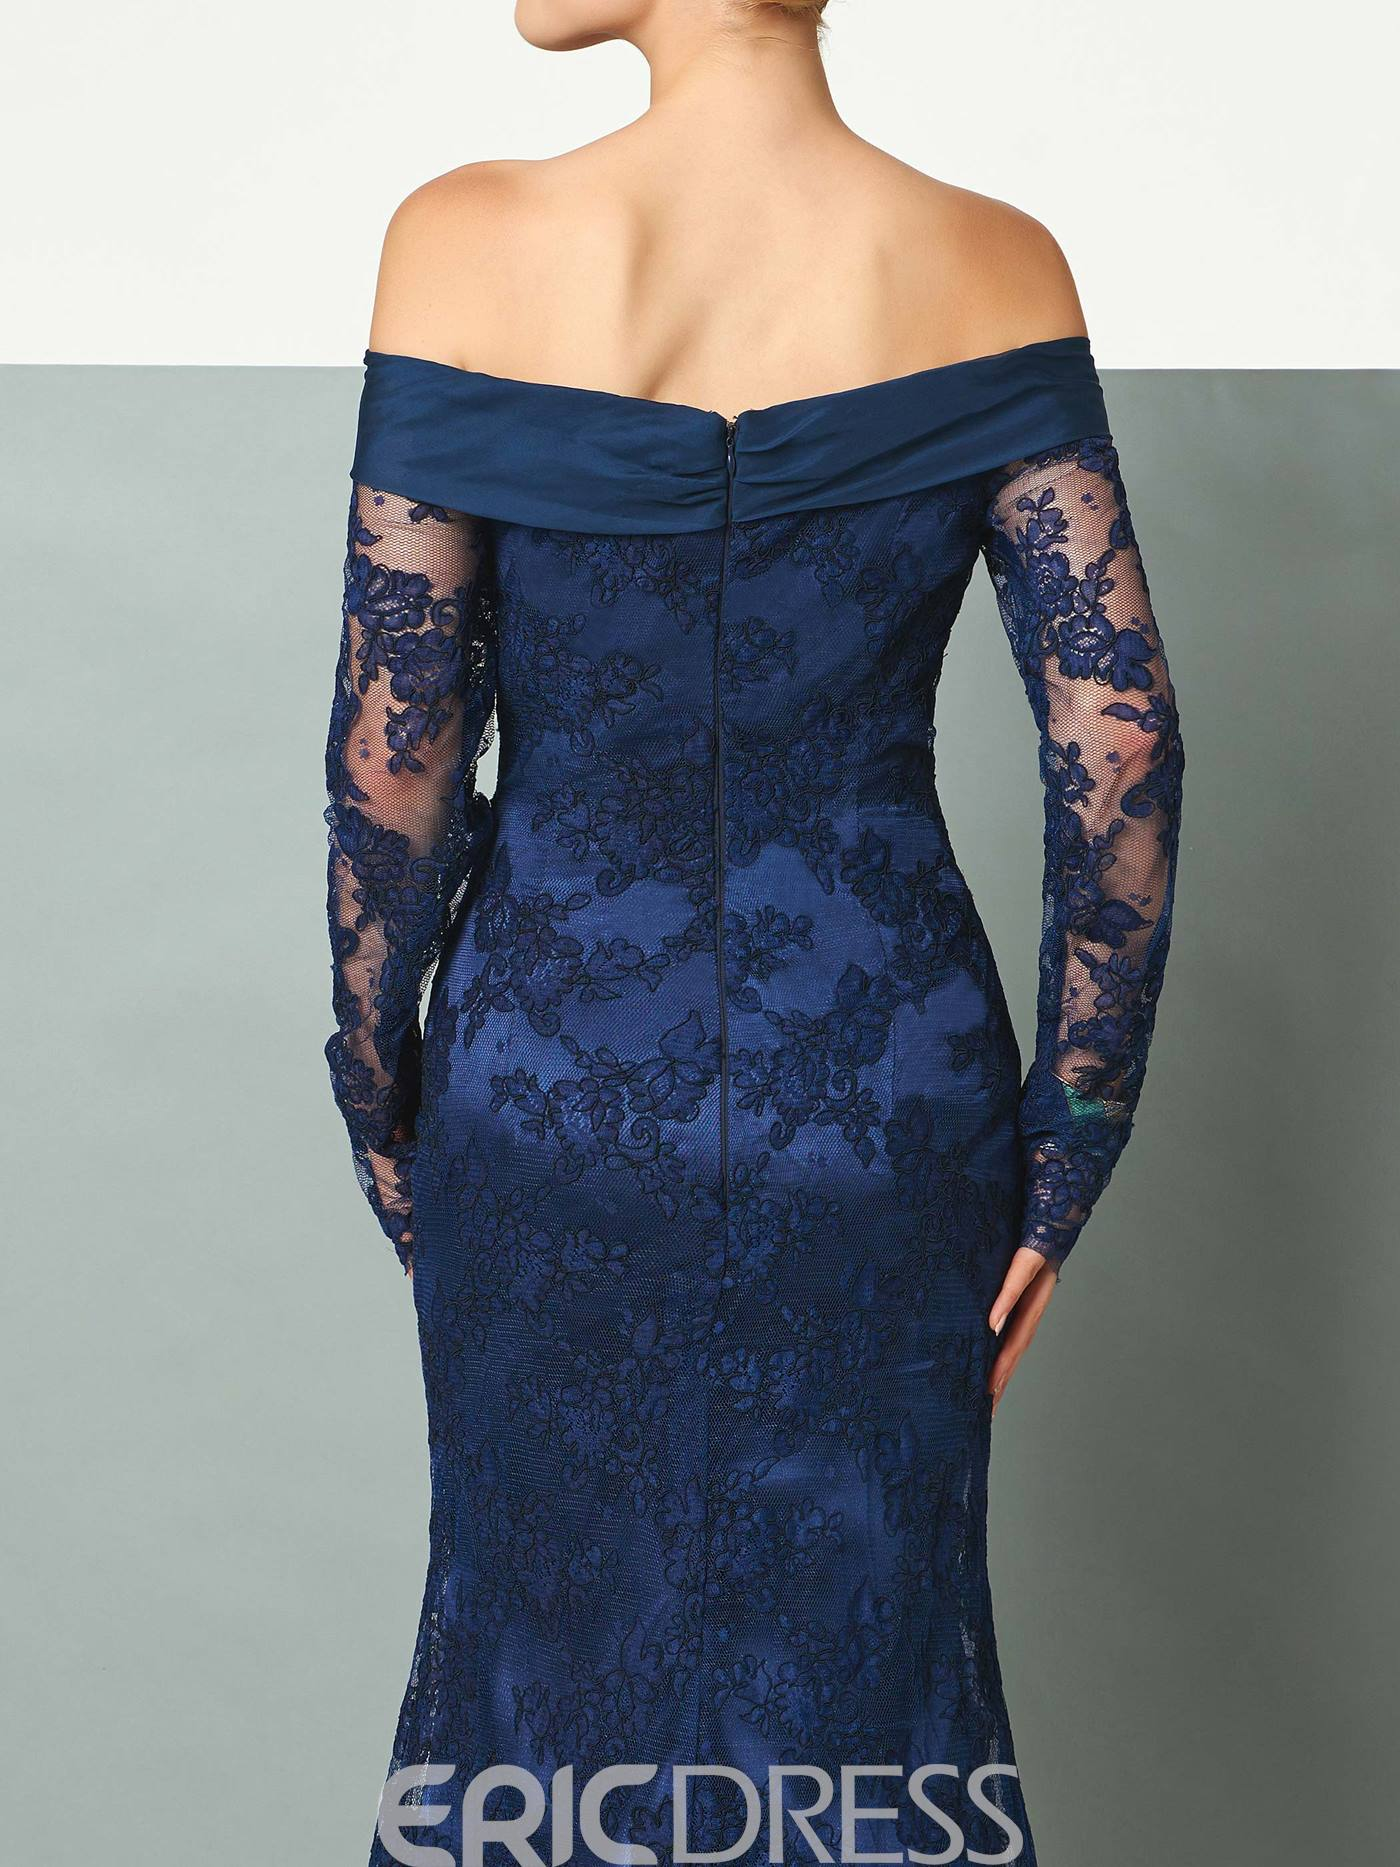 Ericdress Off The Shoulder Lace Mermaid Evening Party Dress With Long Sleeve